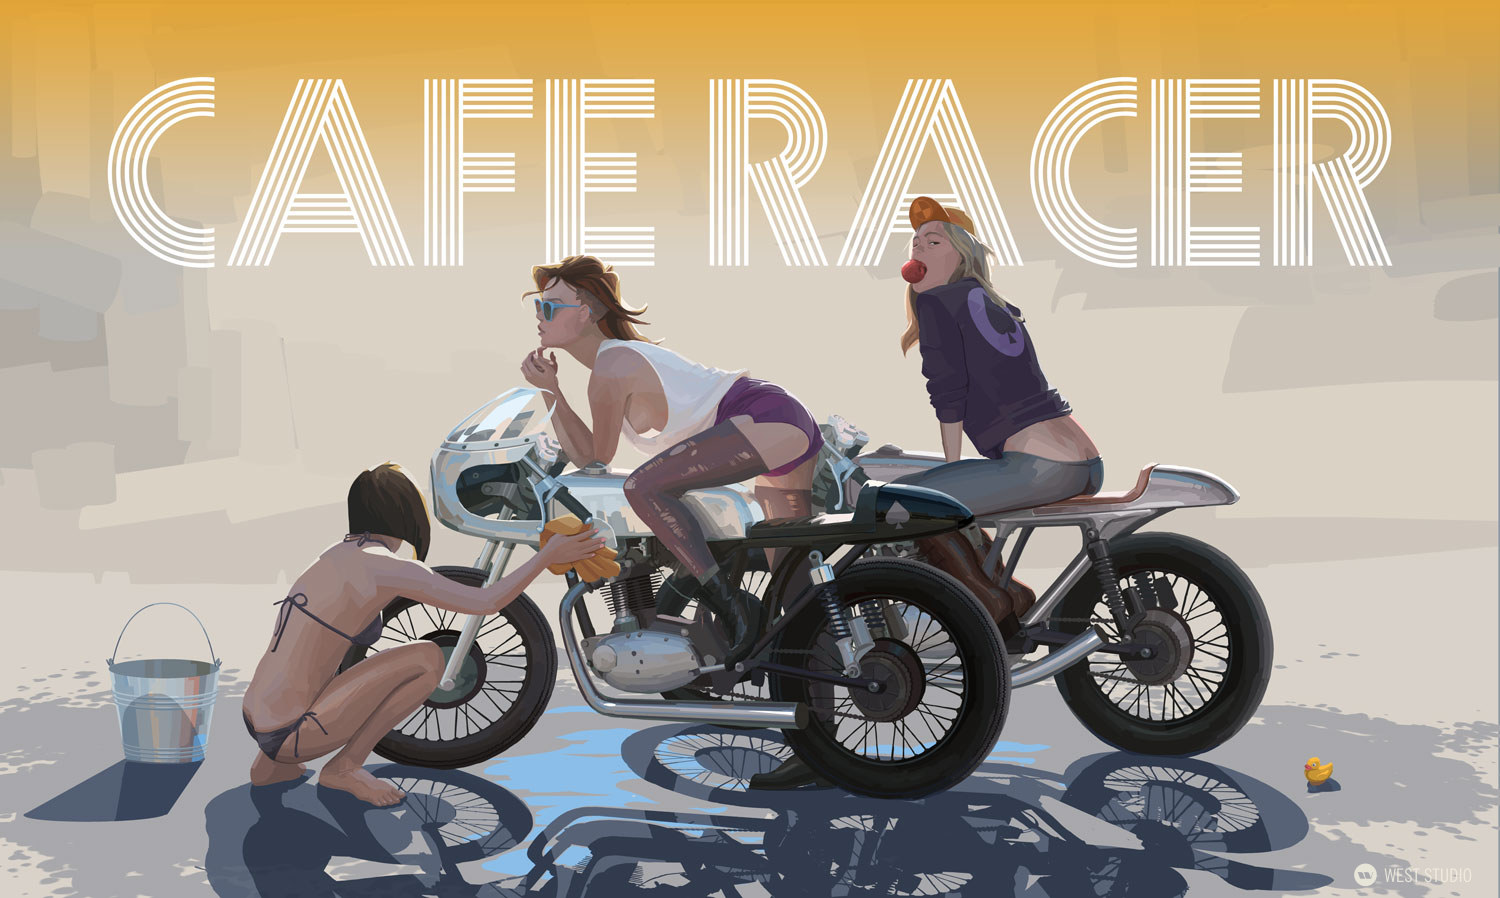 girls, cafe racer, poster, illustration